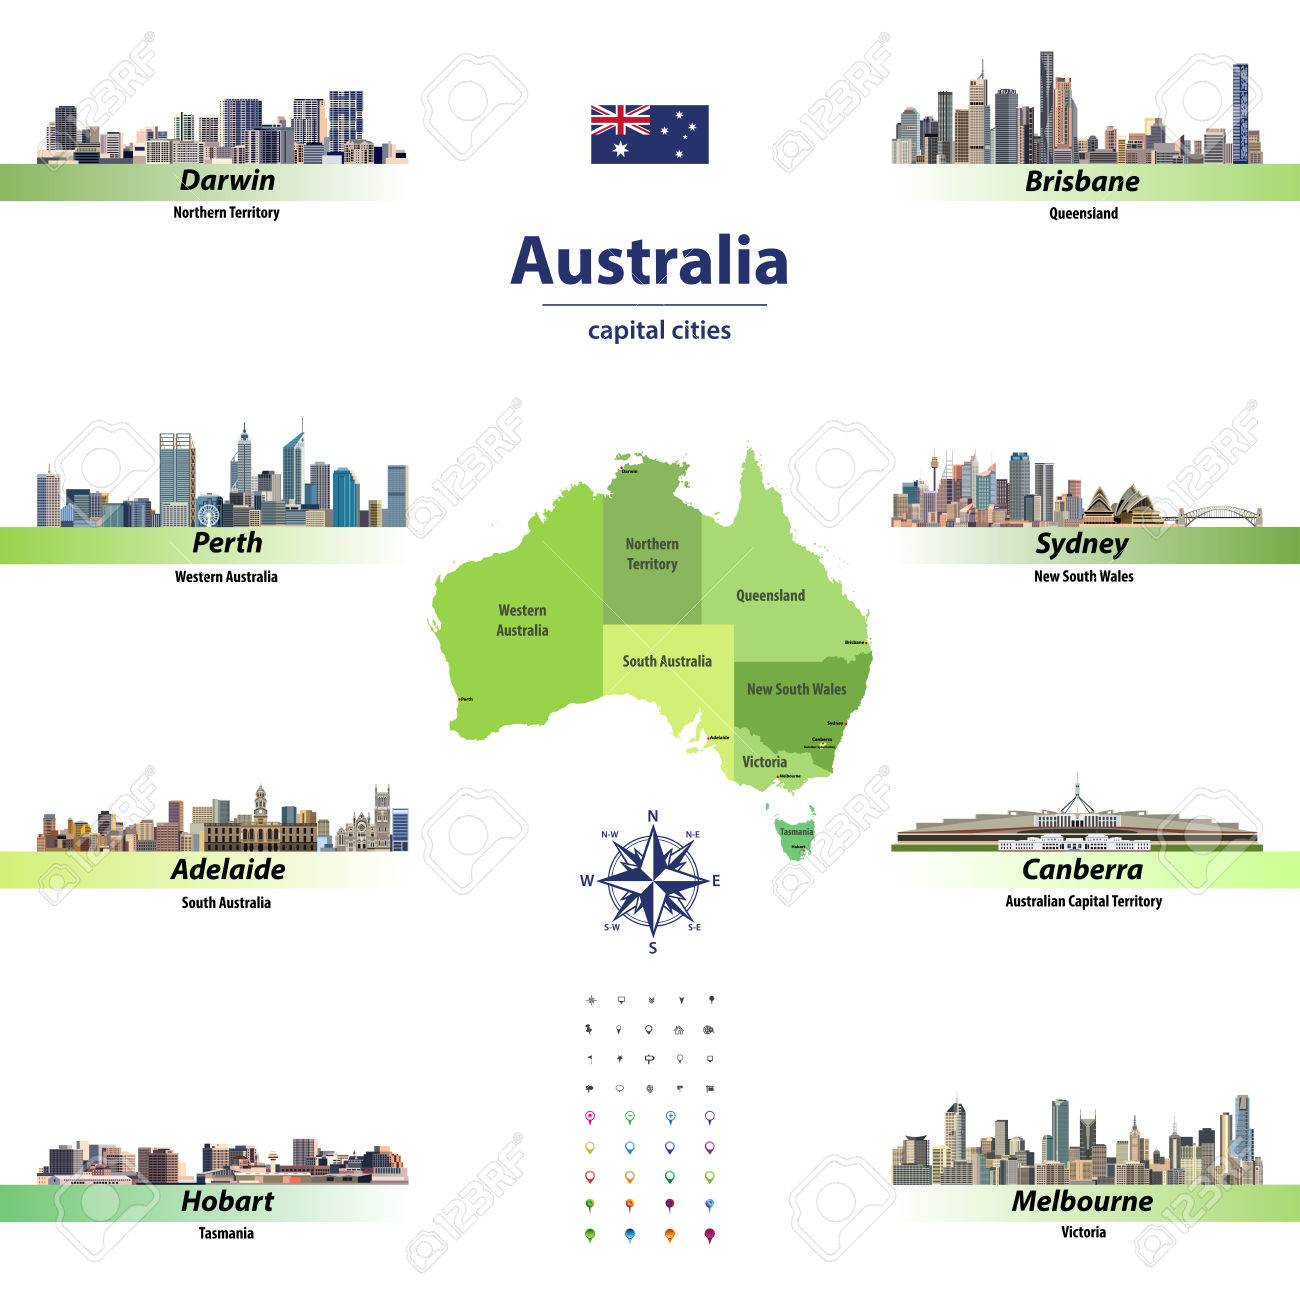 Map Of Australia Showing Capital Cities.Vector Illustration Of Australia State Map With Skylines Of Capital